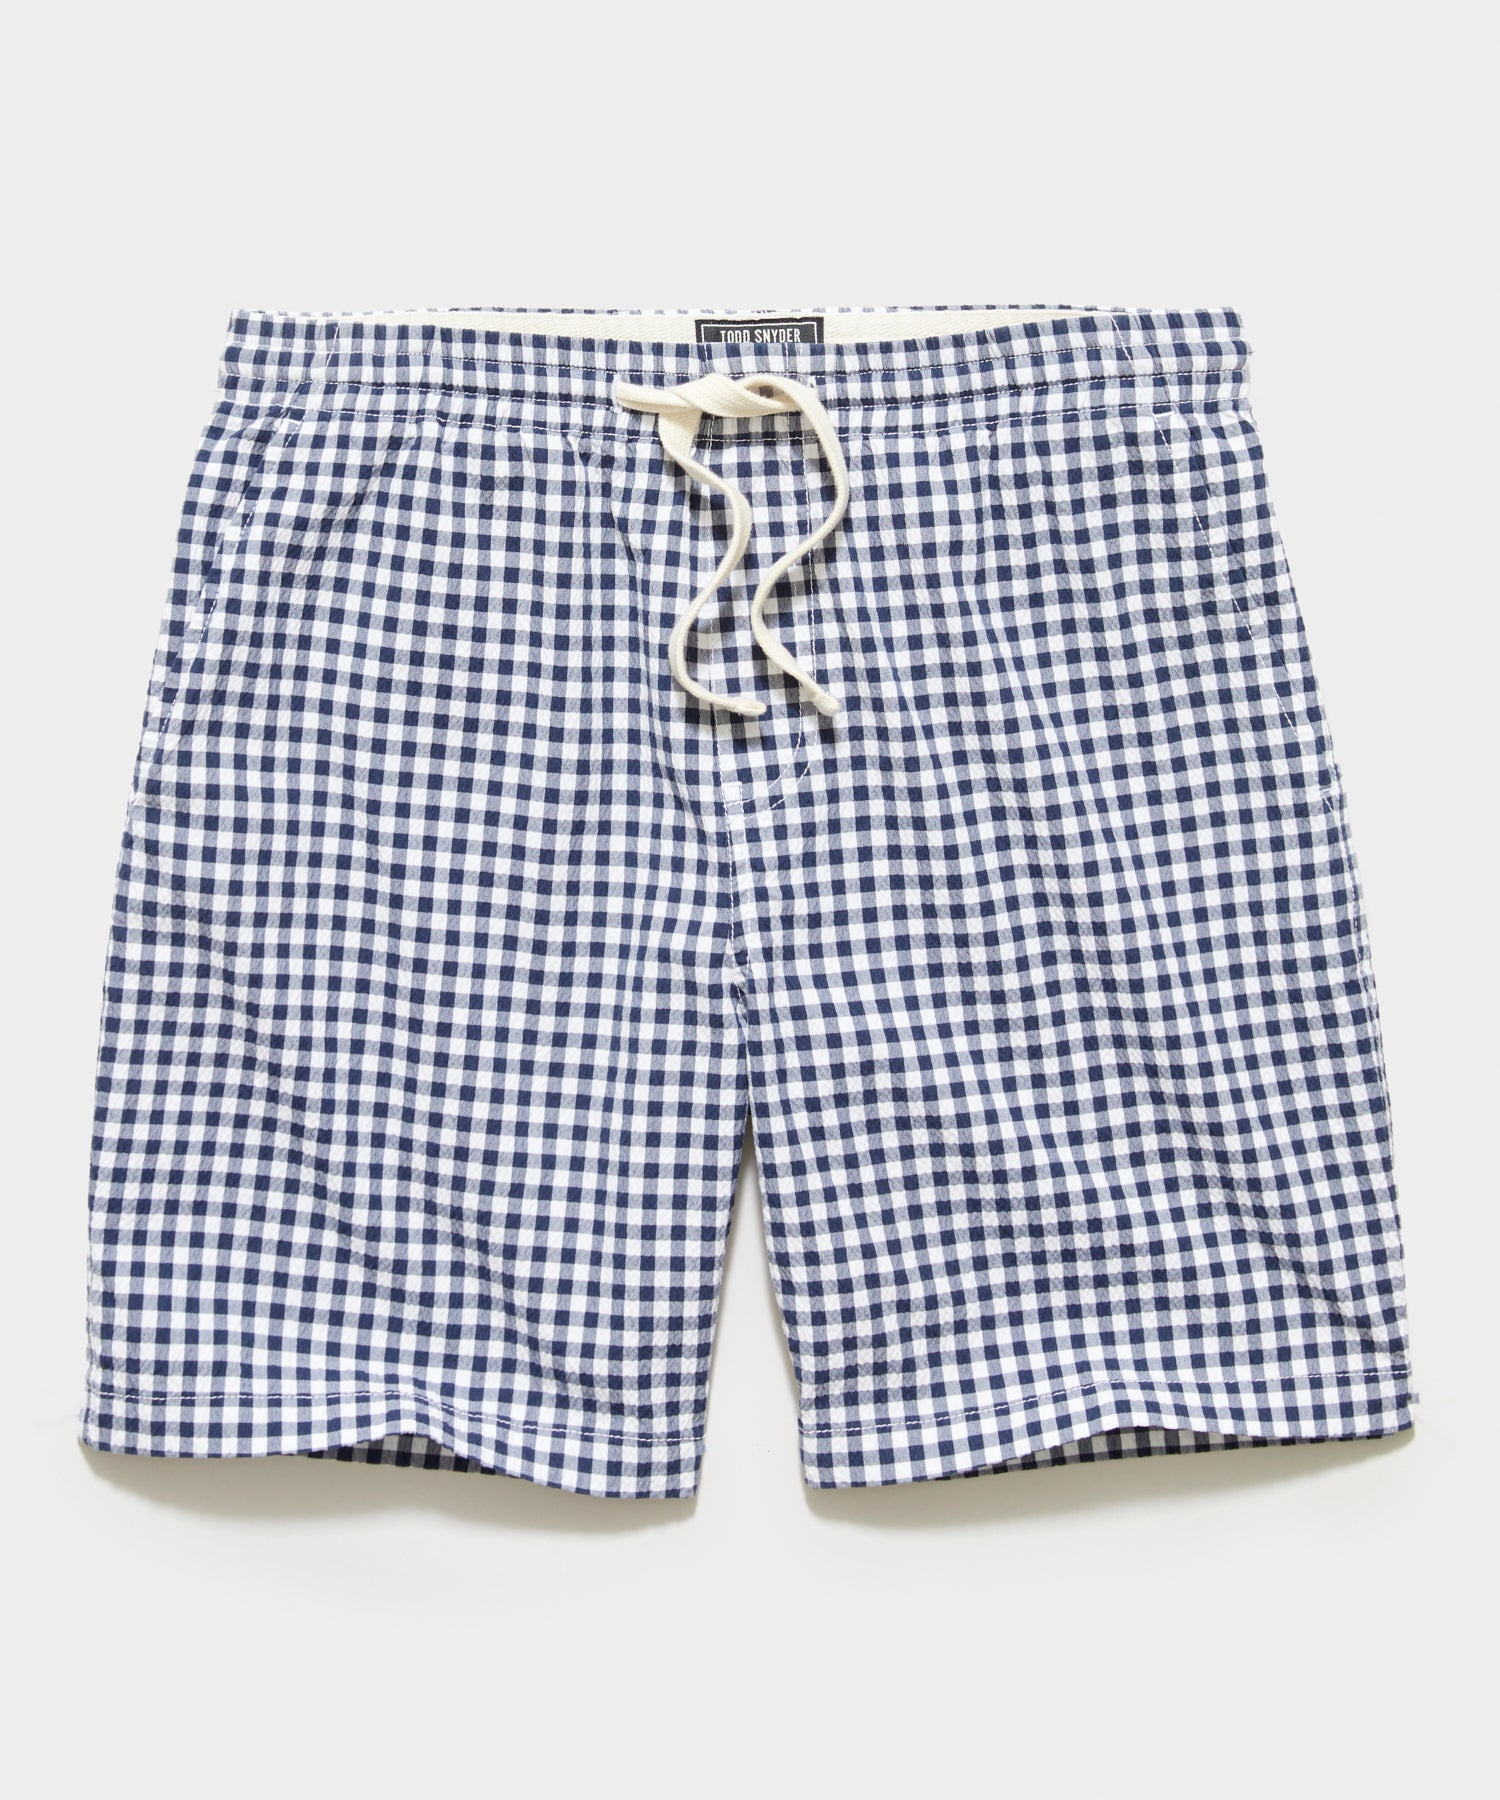 "7"" Italian Seersucker Weekend Short in Navy Gingham"